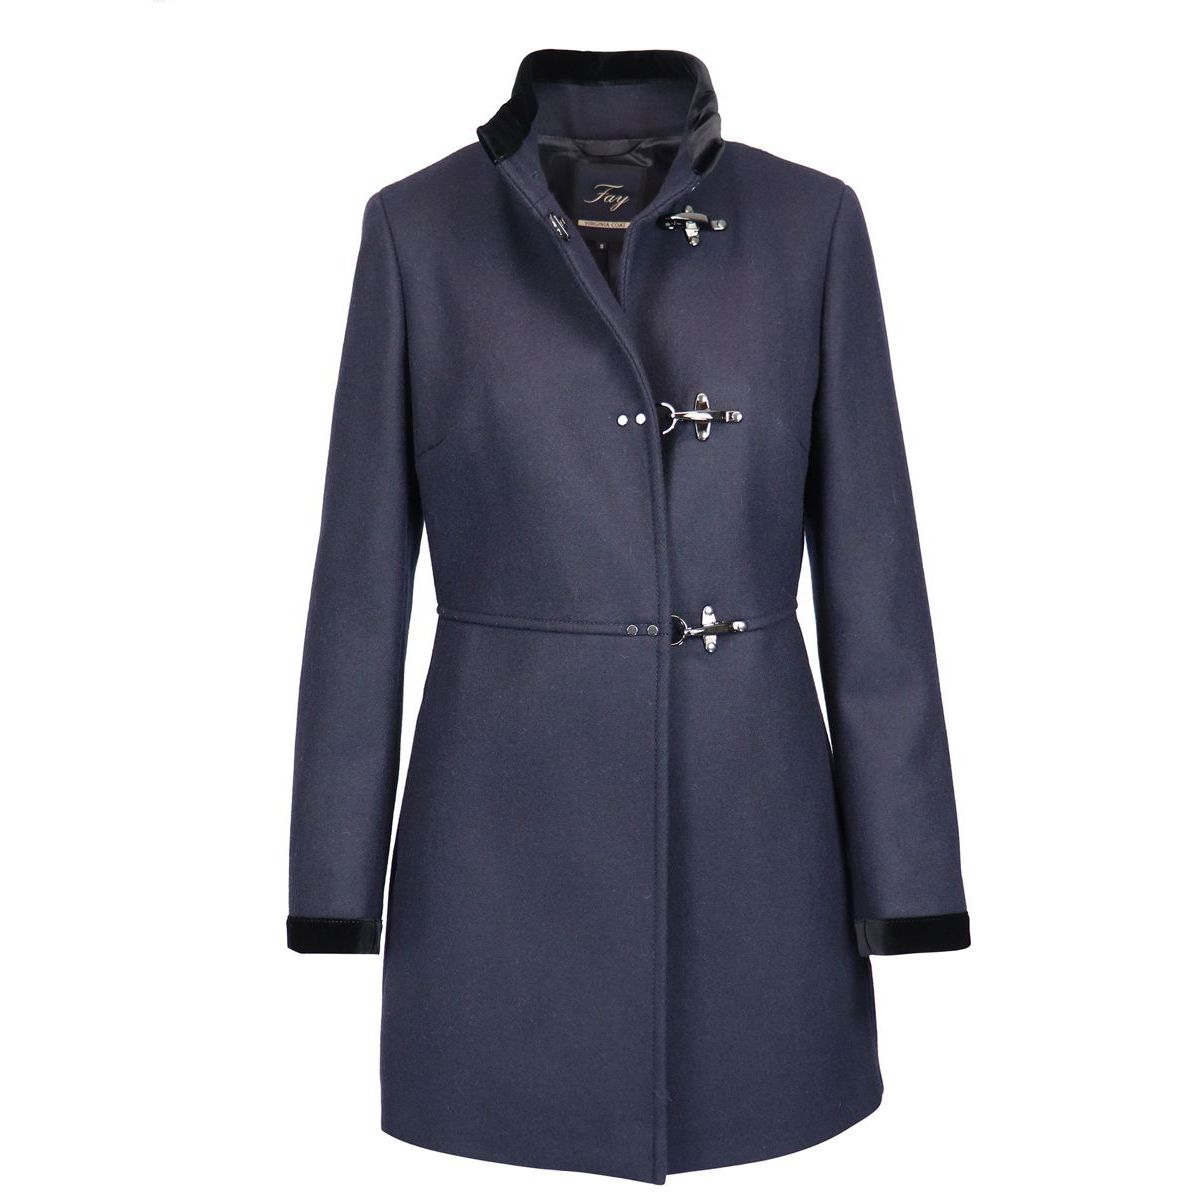 Virginia cloth coat with hooks Night blue Fay